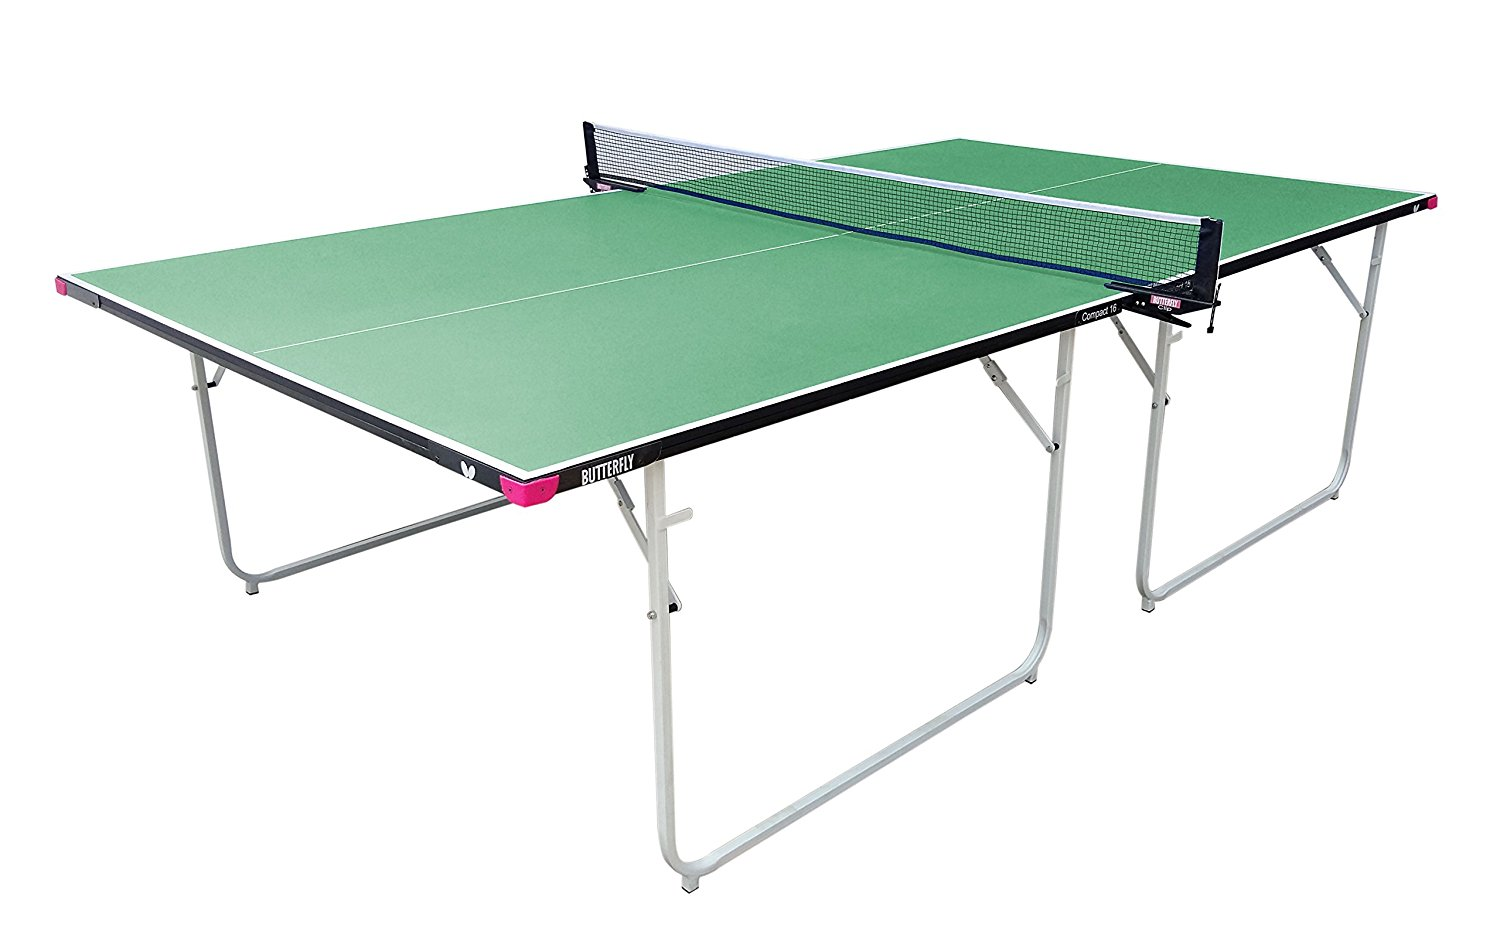 Erfly Compact Table Tennis